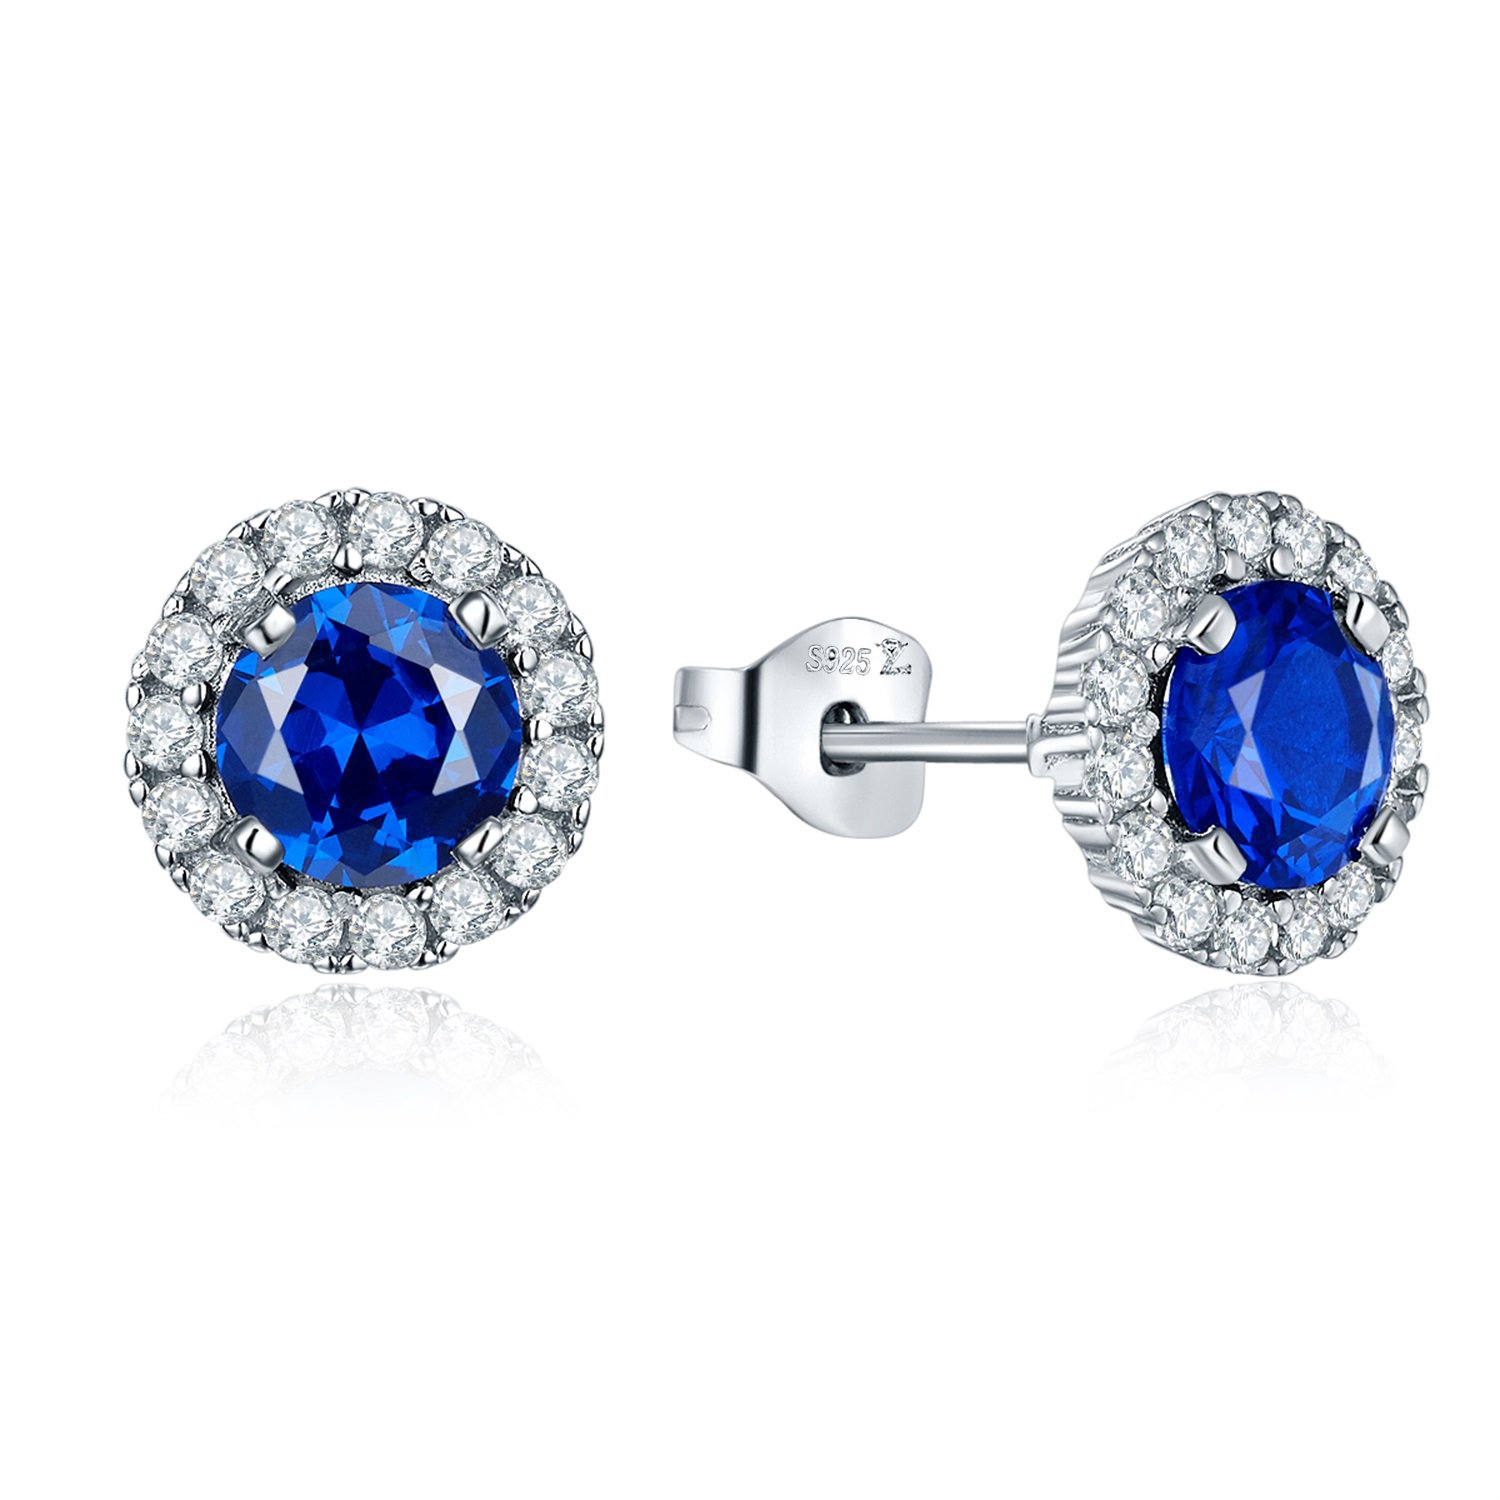 JO WISDOM 925 Sterling Silver Round Gemstone and Blue Created Sapphire Halo Stud Earrings